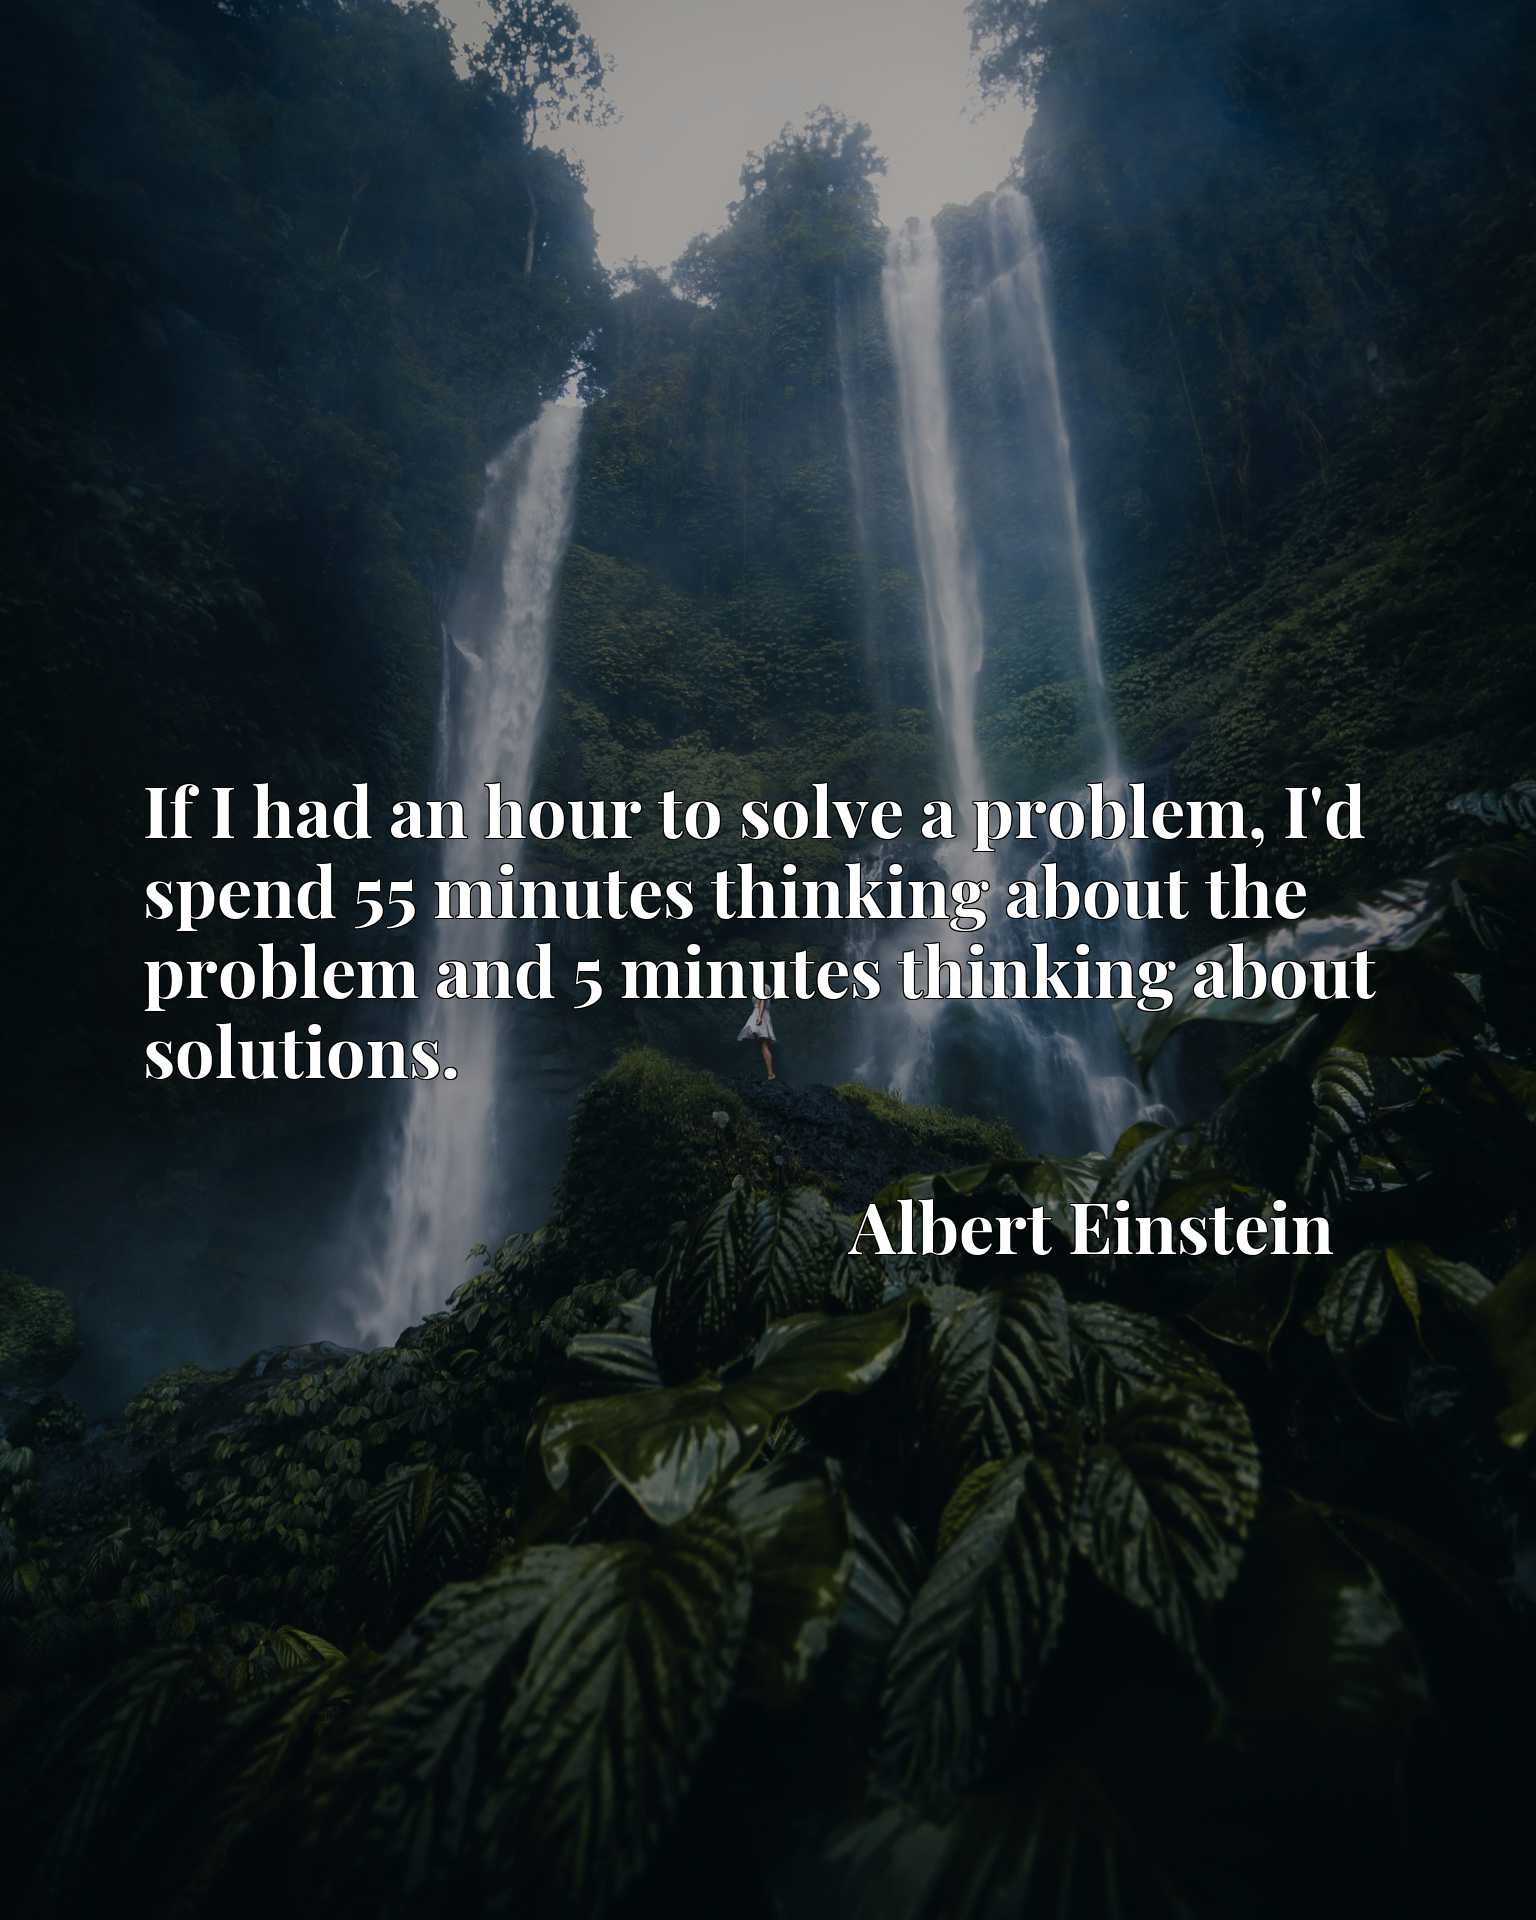 If I had an hour to solve a problem, I'd spend 55 minutes thinking about the problem and 5 minutes thinking about solutions.